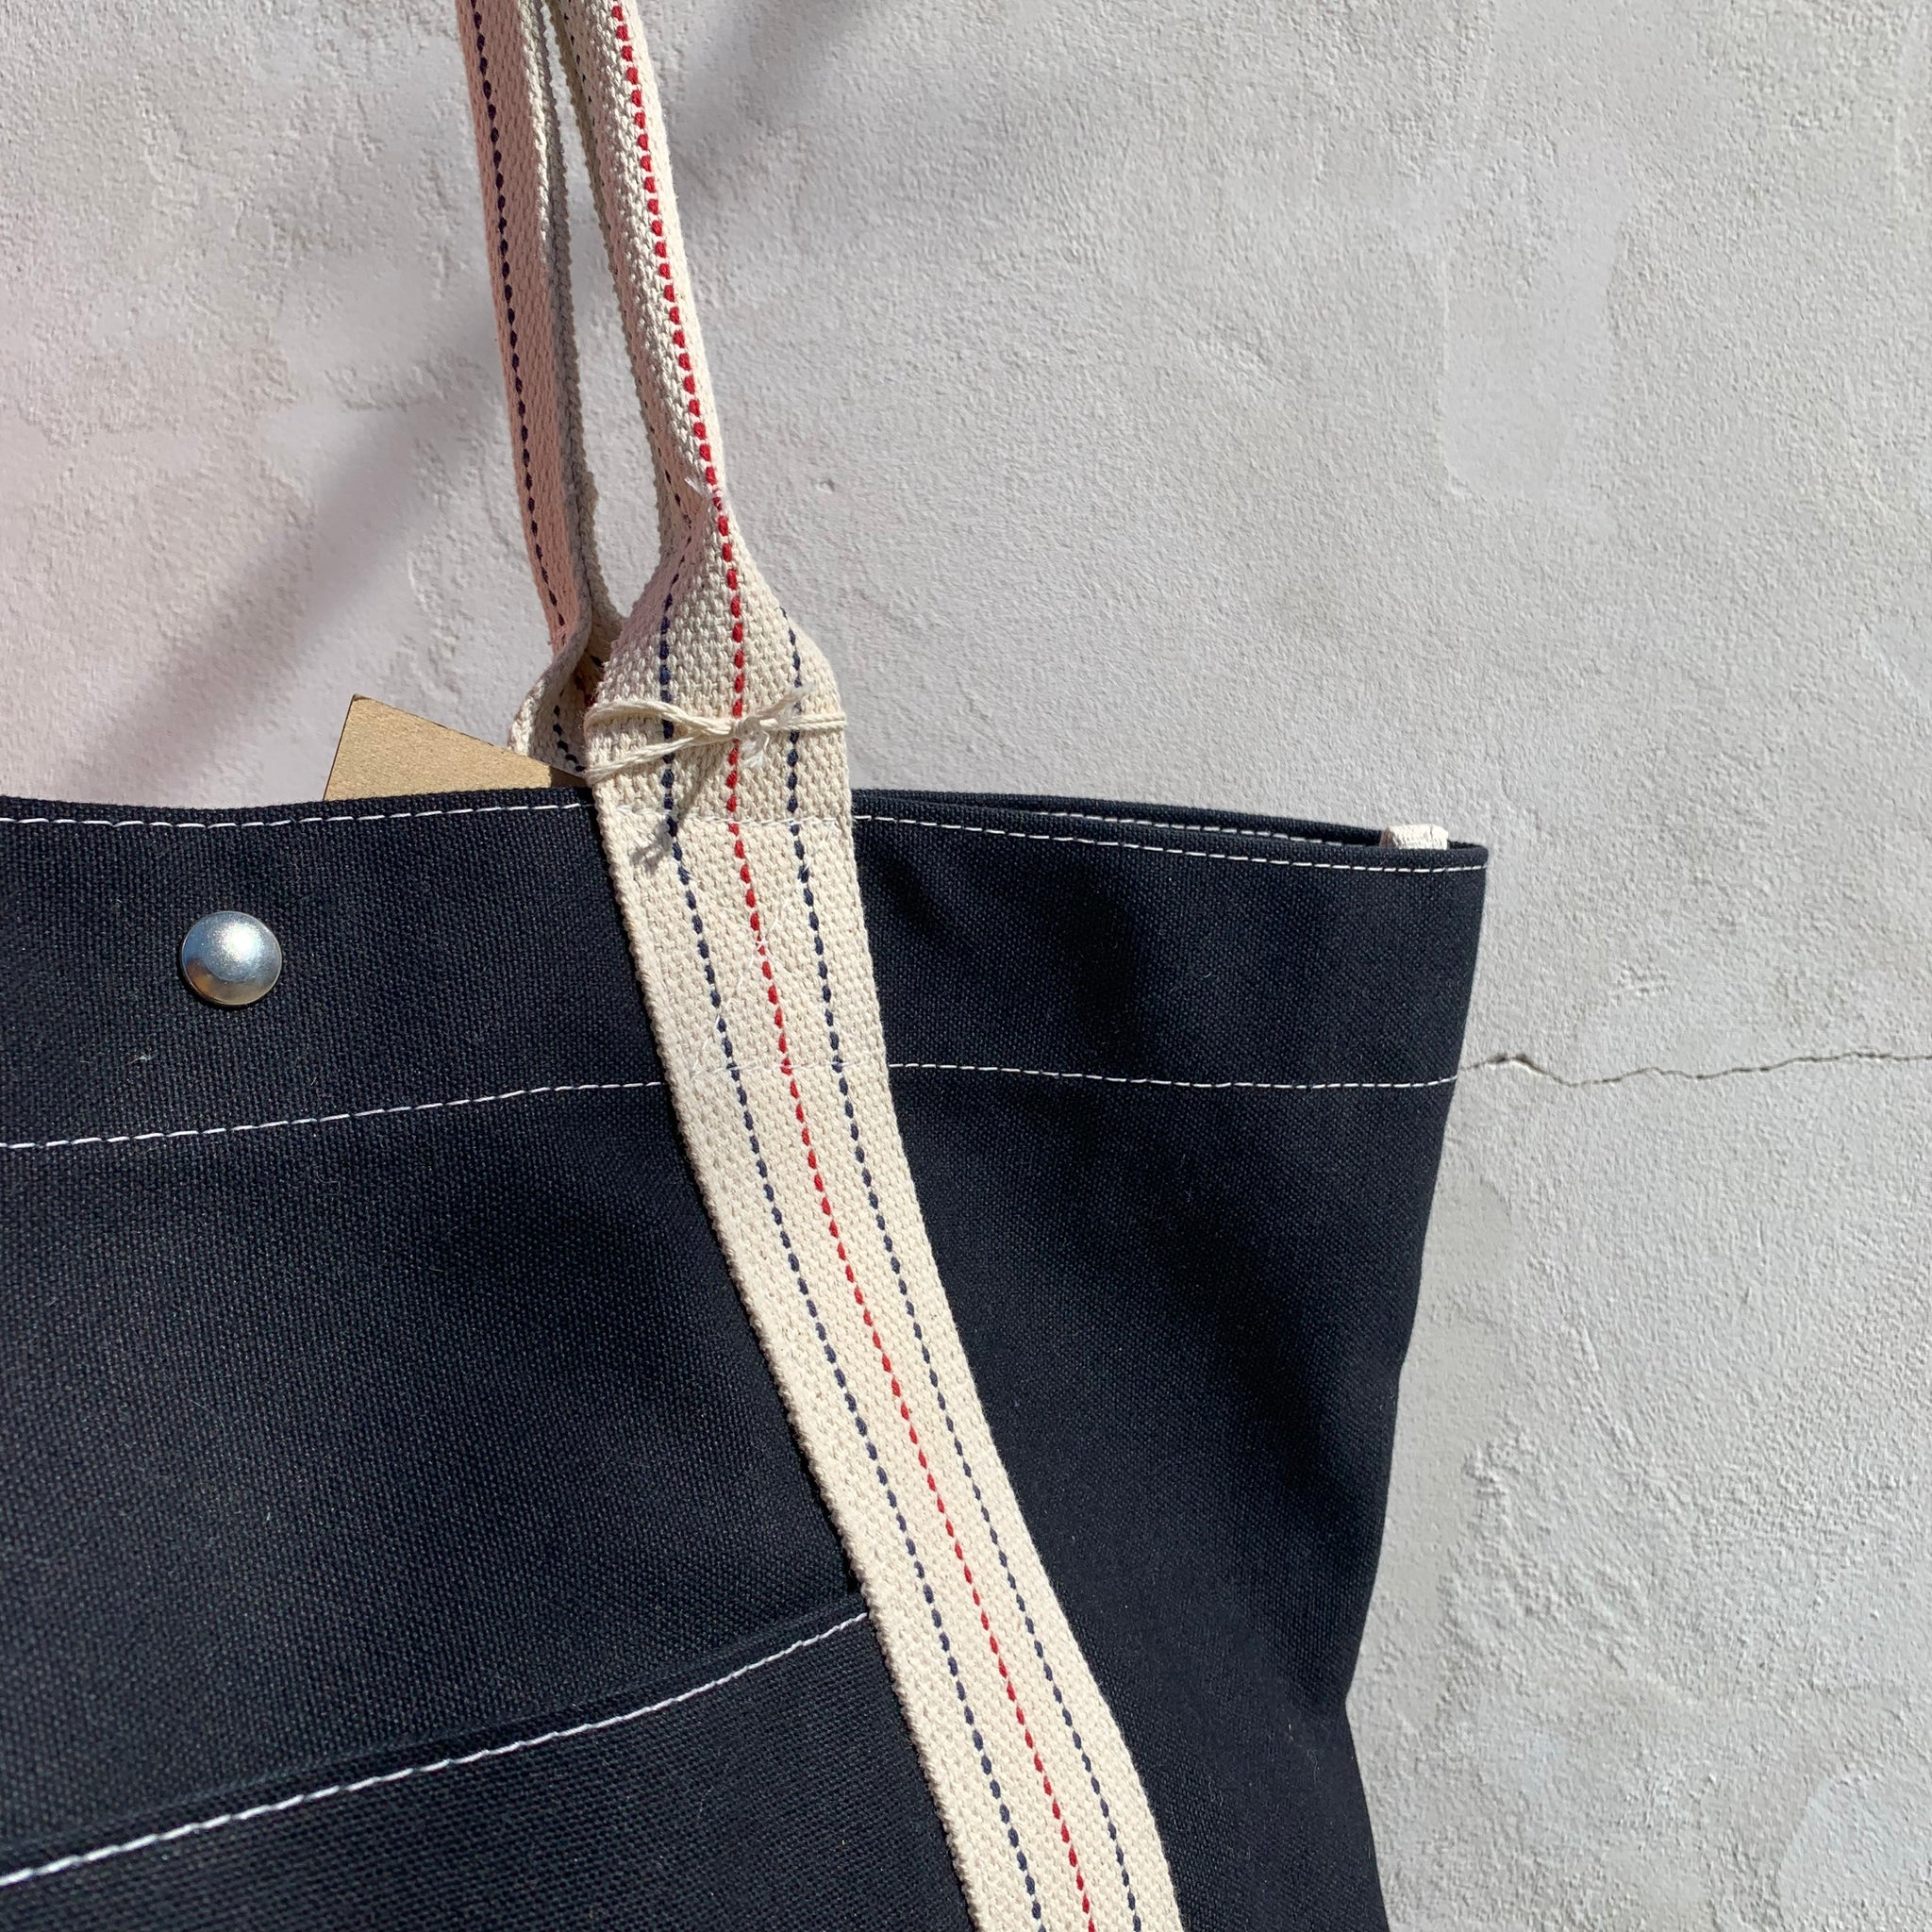 A-Frame Tote Bag by Utility Canvas - Upstate MN